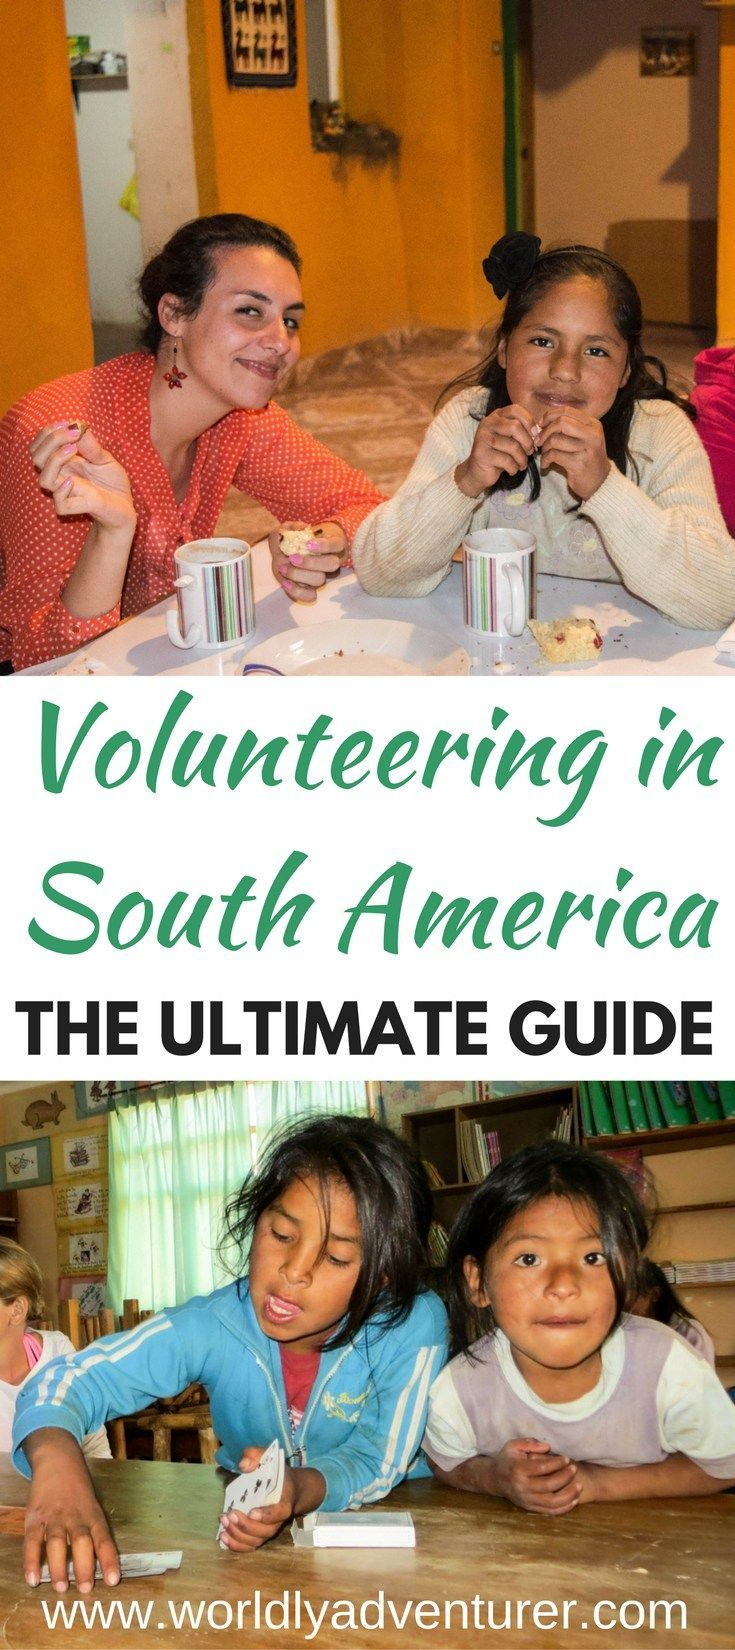 Want to volunteer in South America but not sure where to start? This ultimate guide has information about different South American countries where you can volunteer, types of volunteering programs in South America that you can find, how to evaluate your skill-set before volunteer to help you choose a role, whether you should pay to volunteer and how long you need to commit to a volunteering program in South America.